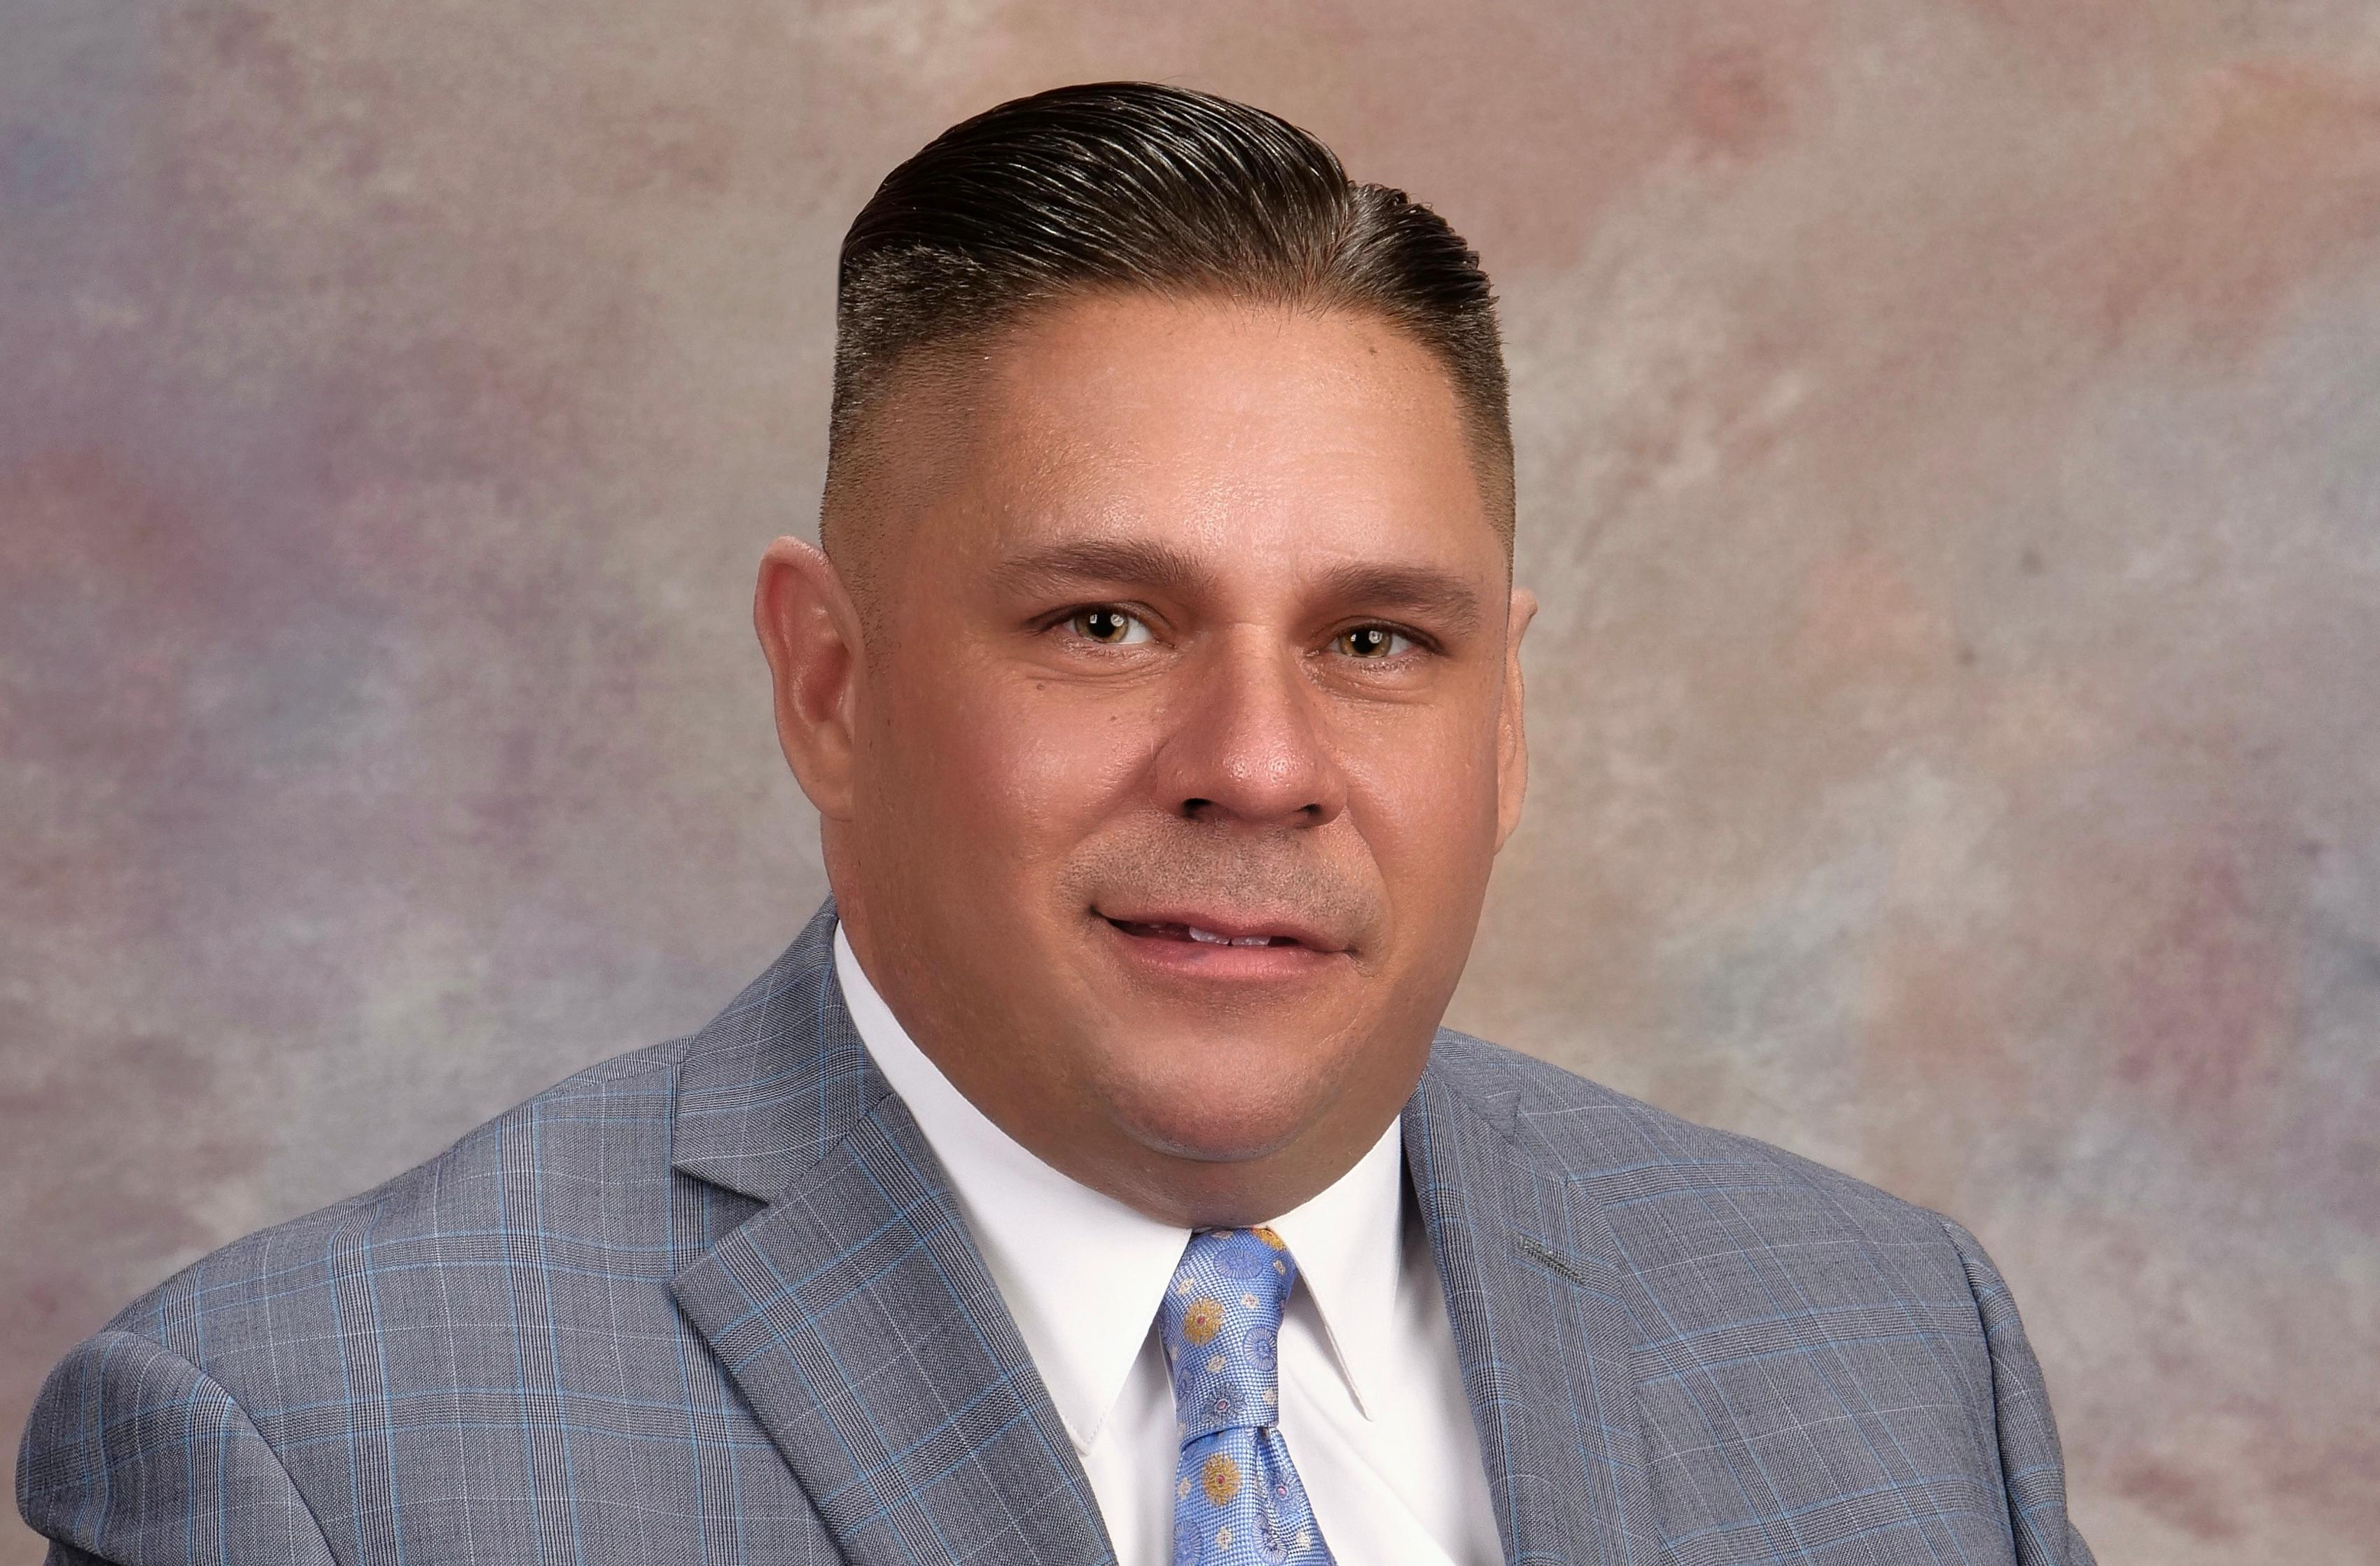 NICK ABBRUZZESE Your Financial Professional & Insurance Agent